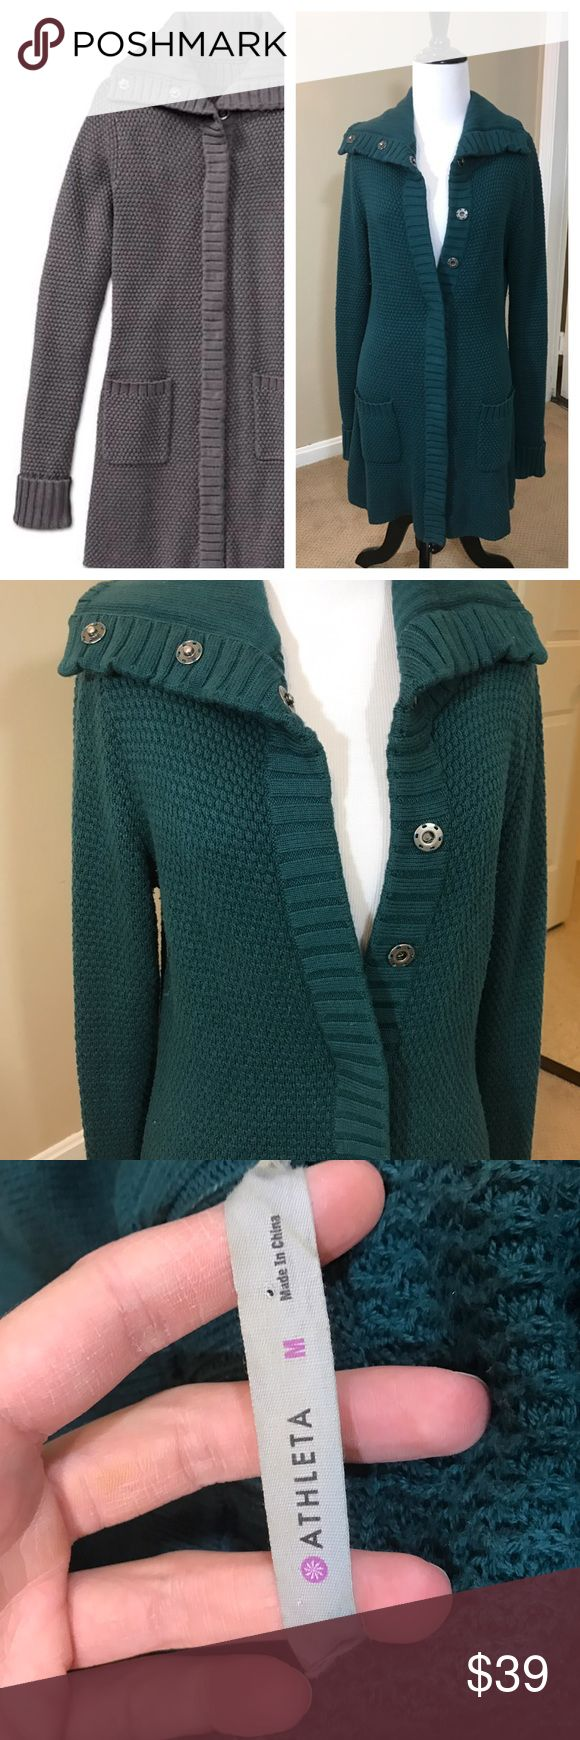 Athleta 'Sula' Long Sweater Coat Snap Front Athleta Sula sweater. Long cut, could be worn as a jacket. Snap front. Forrest Green. Cotton blend. No flaws. Size medium 💕 Athleta Sweaters